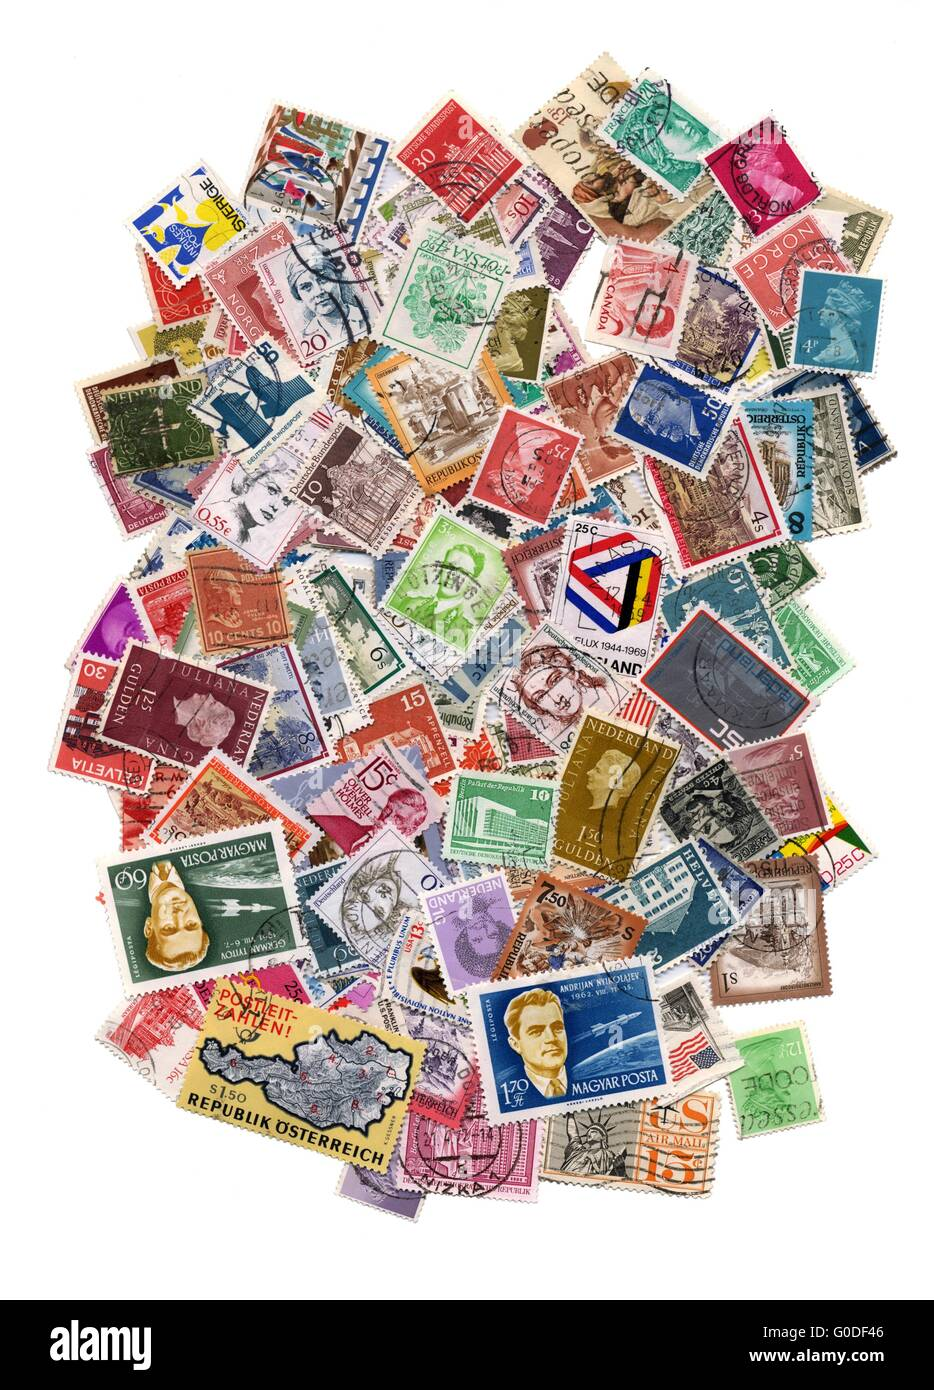 Hundreds of postage stamps from many different countries - Stock Image